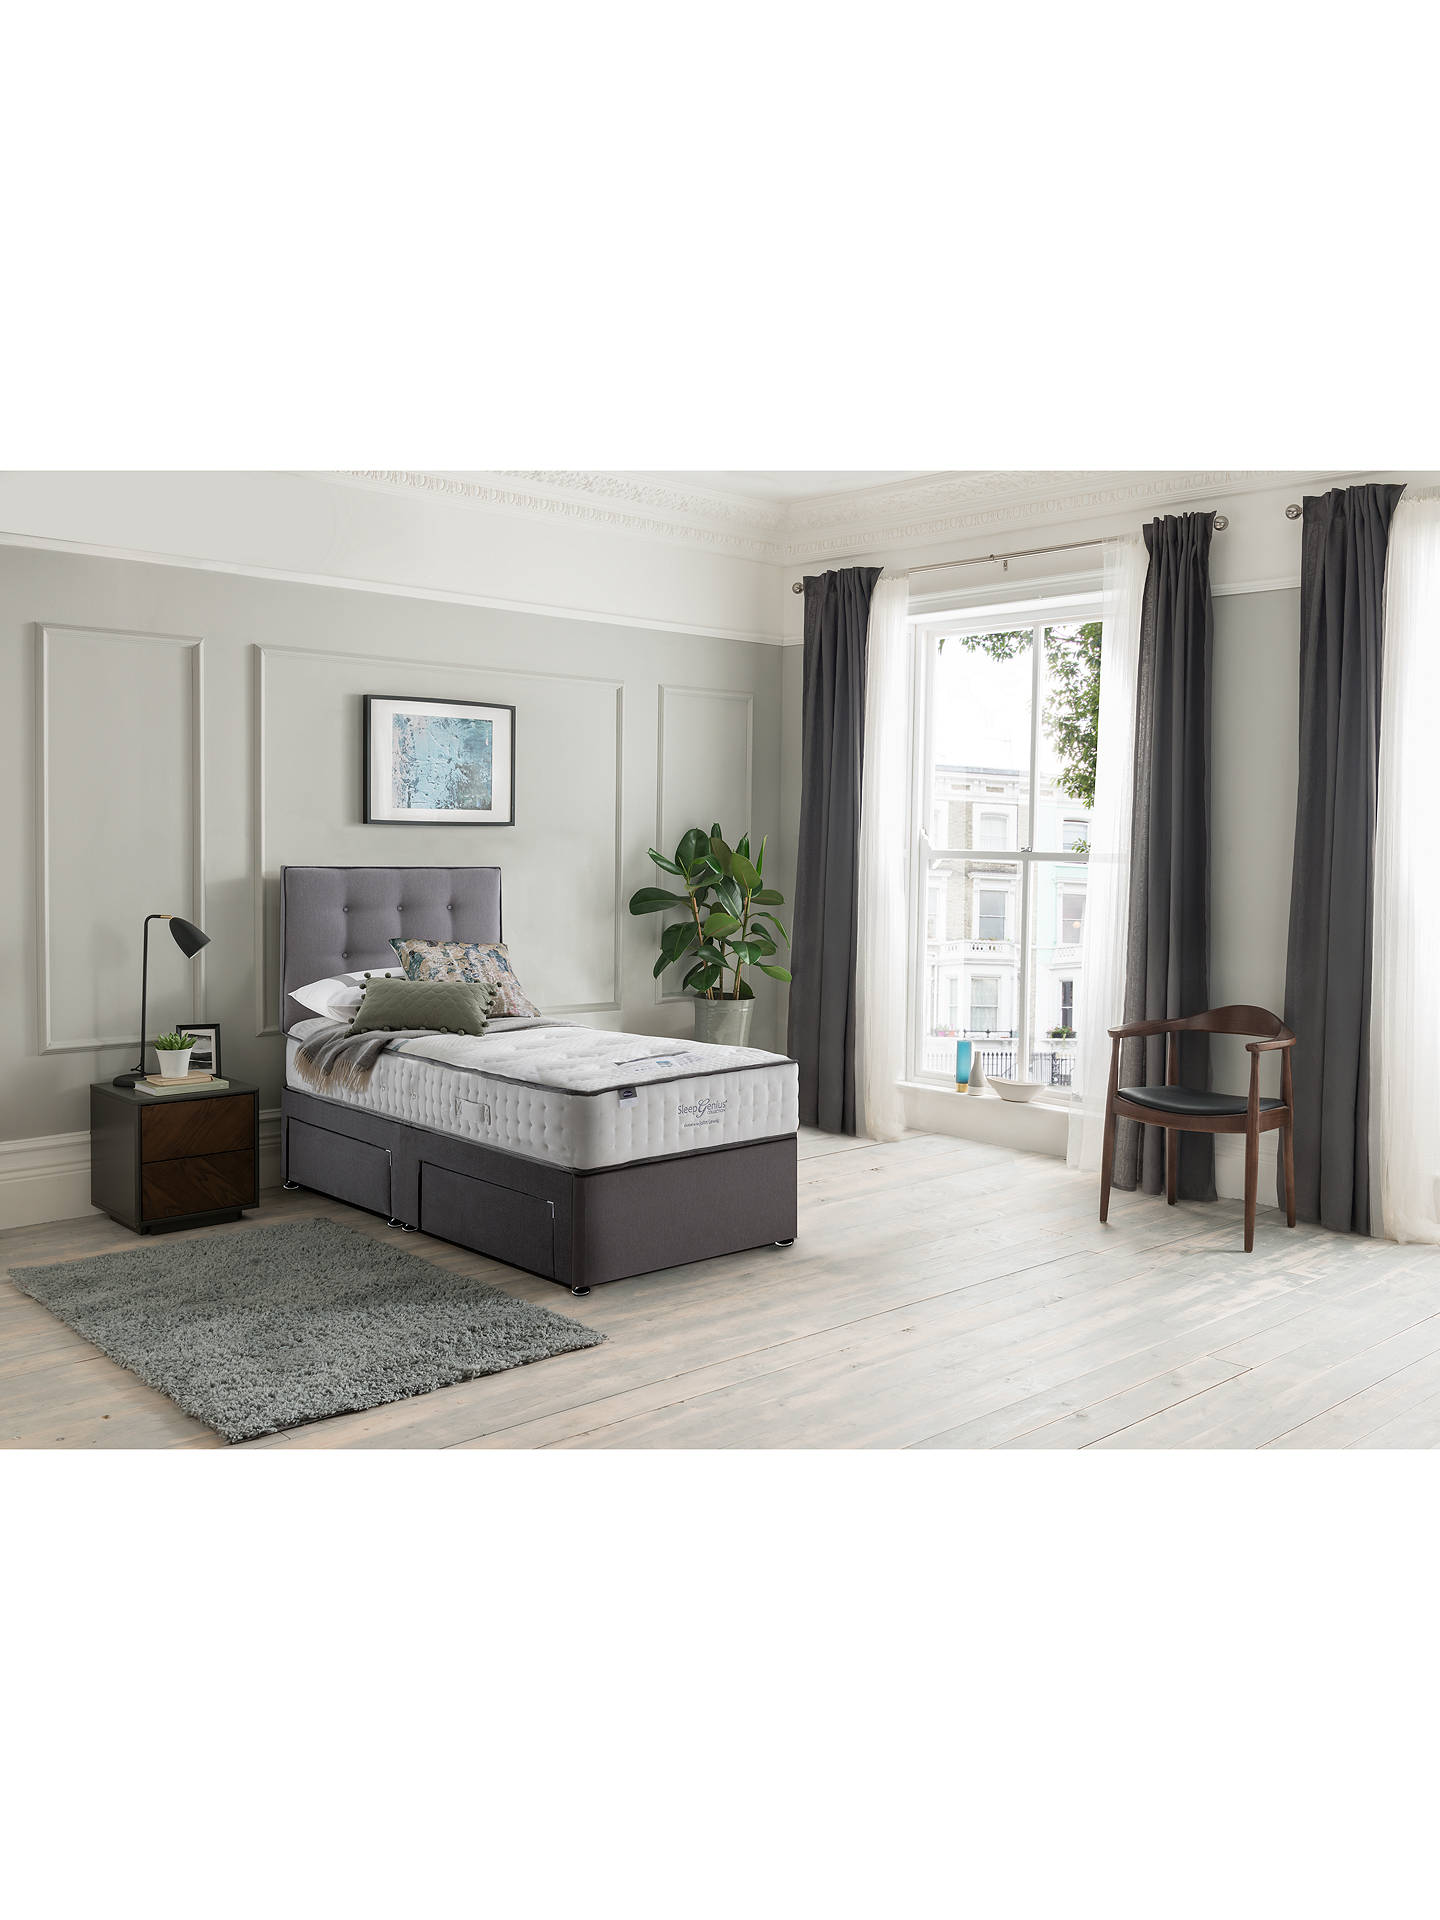 Buy Silentnight Sleep Genius 3000 Pocket Geltex Mattress, Medium Tension, Single Online at johnlewis.com